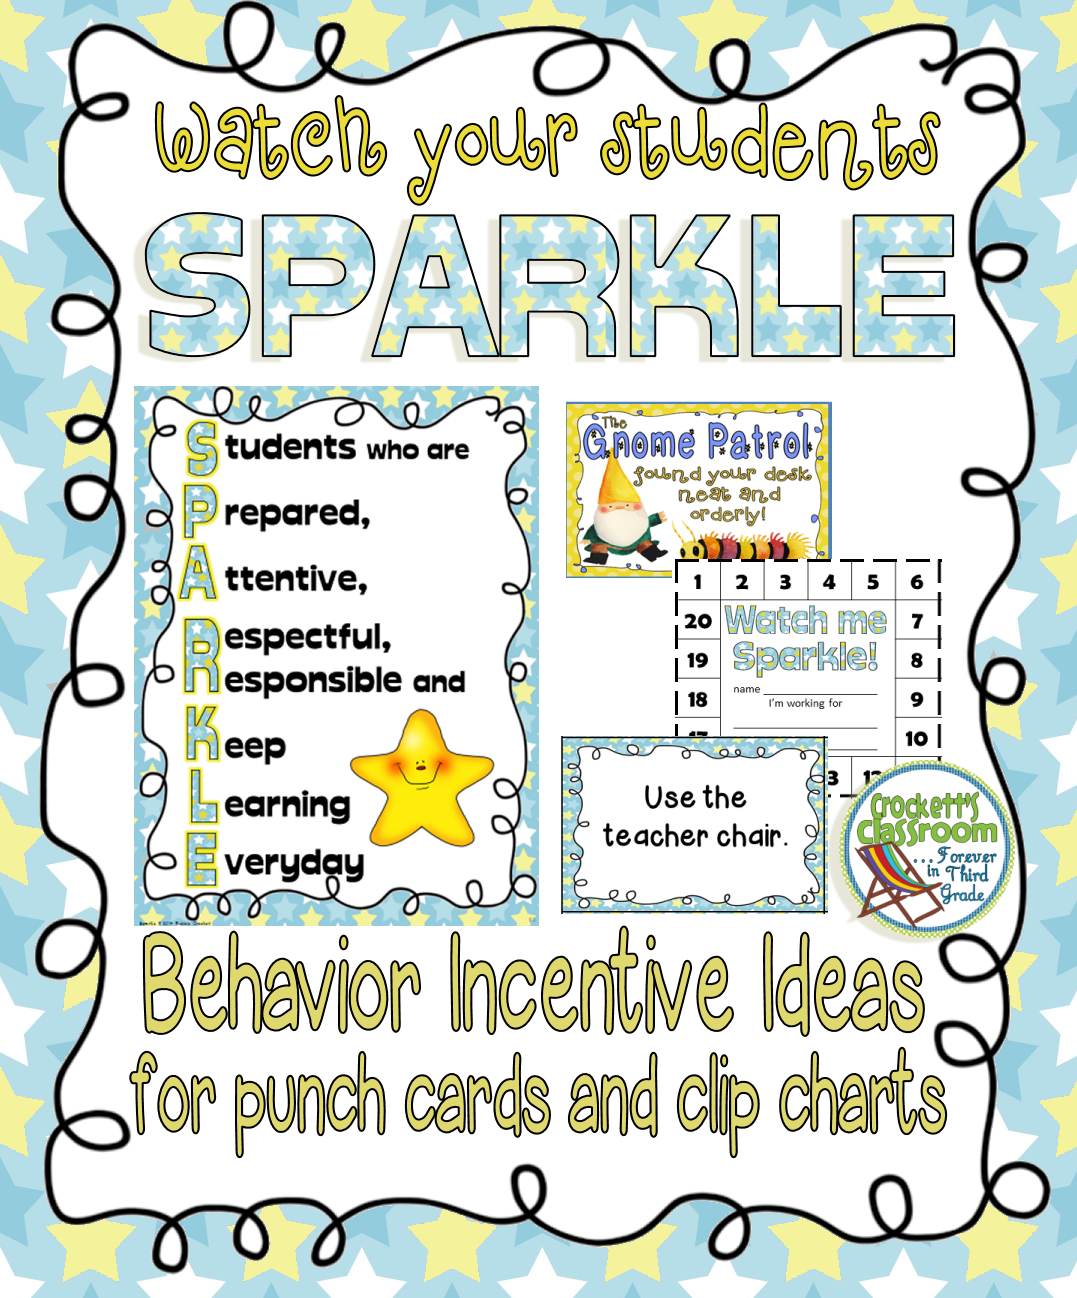 Help your kids SPARKLE with positive behavior!  Crockett's Classroom